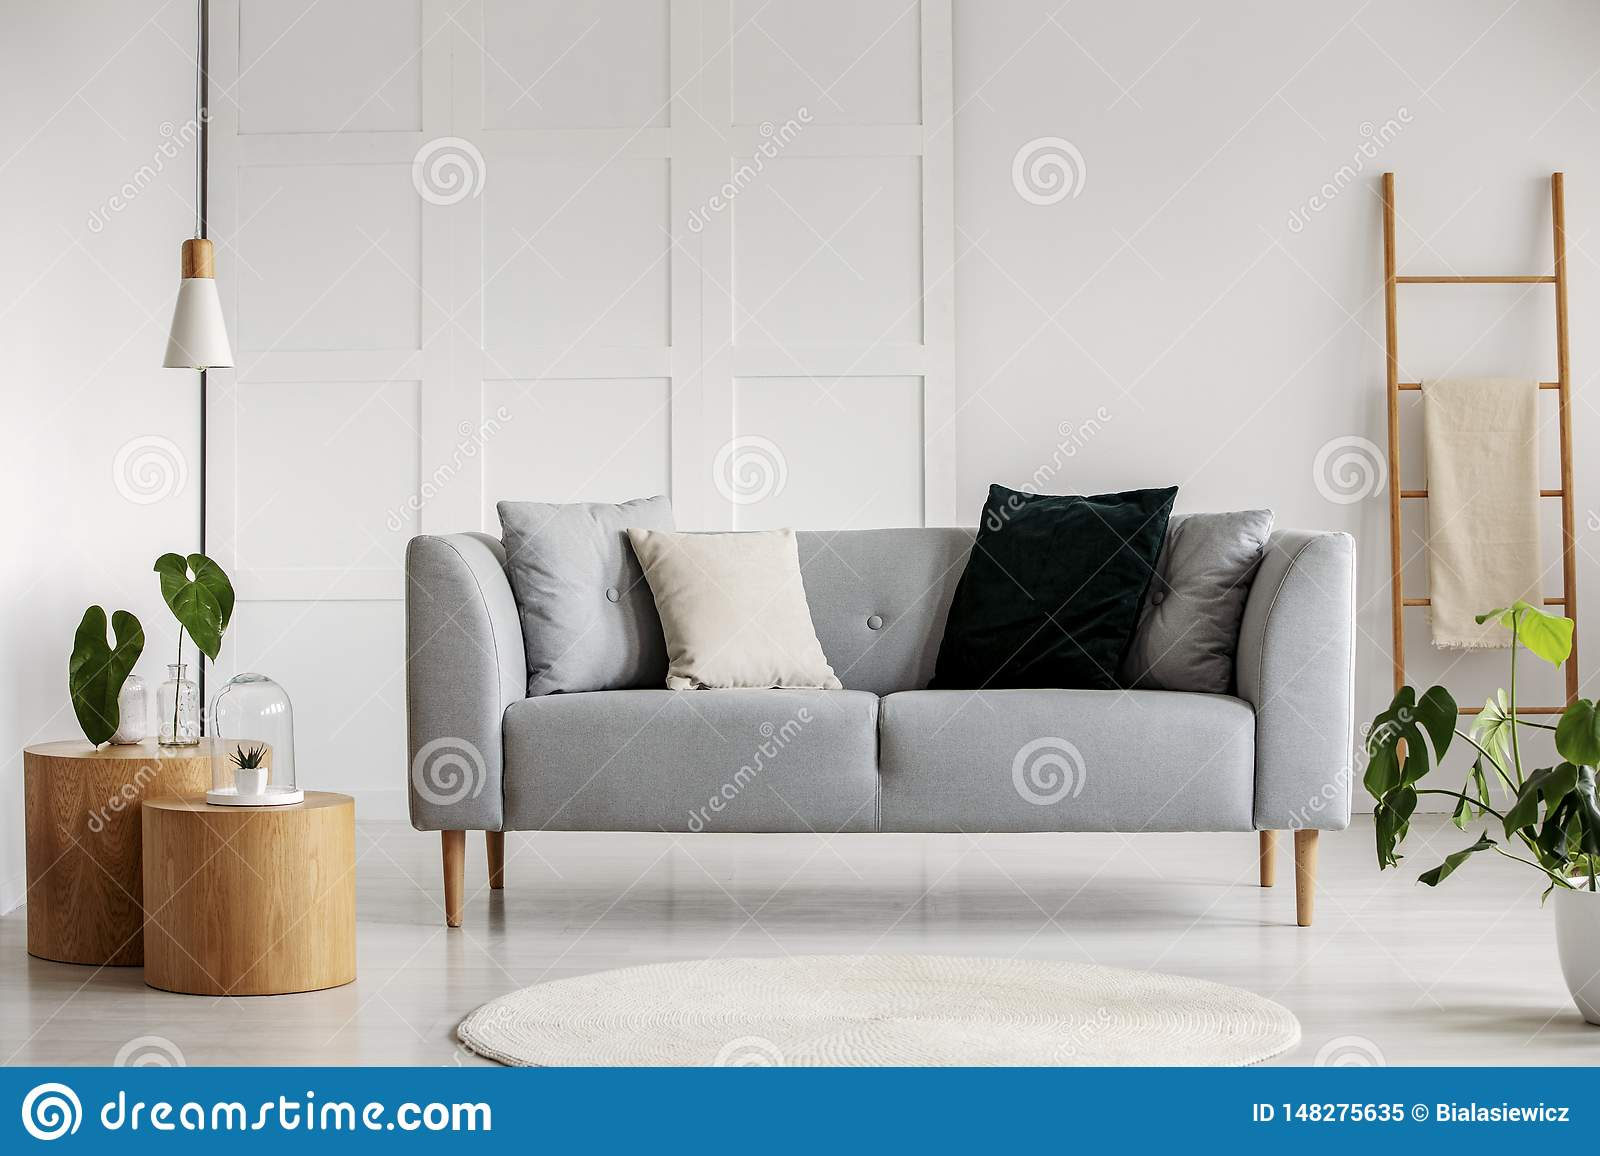 Photo of modern living room with gray sofa